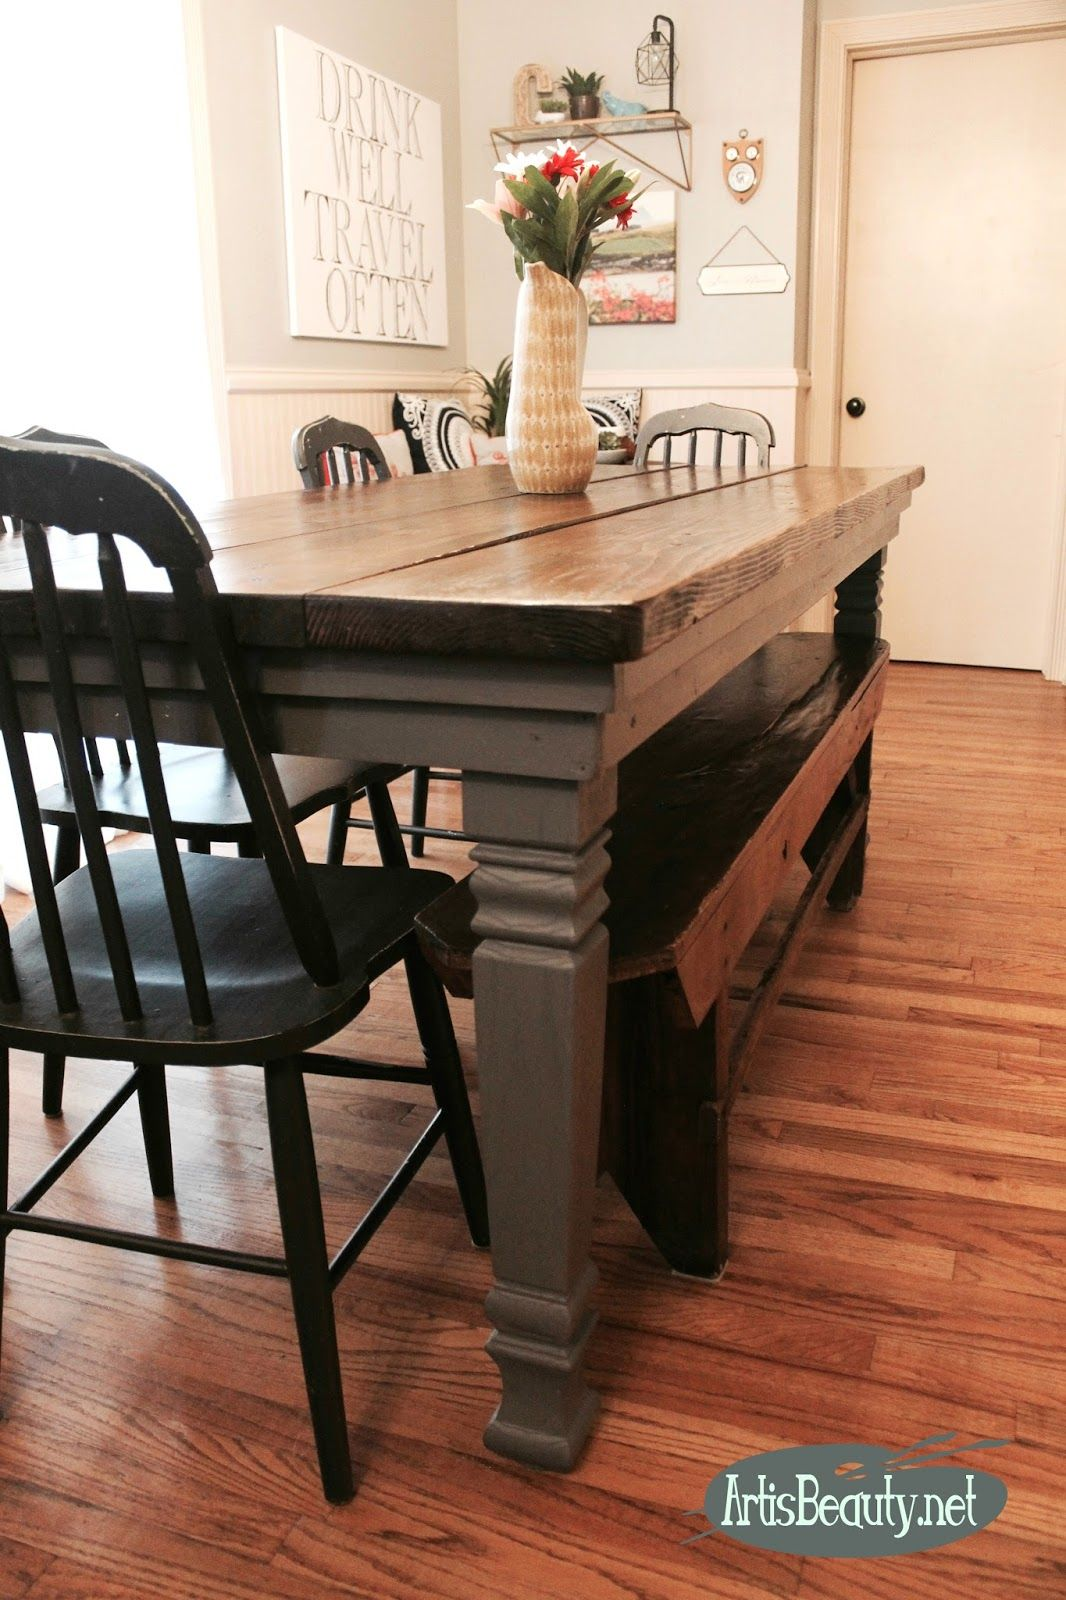 Diy Build Your Own Farmhouse Table Legs Makeover General Finishes Enchanting Design Your Own Dining Room Table Inspiration